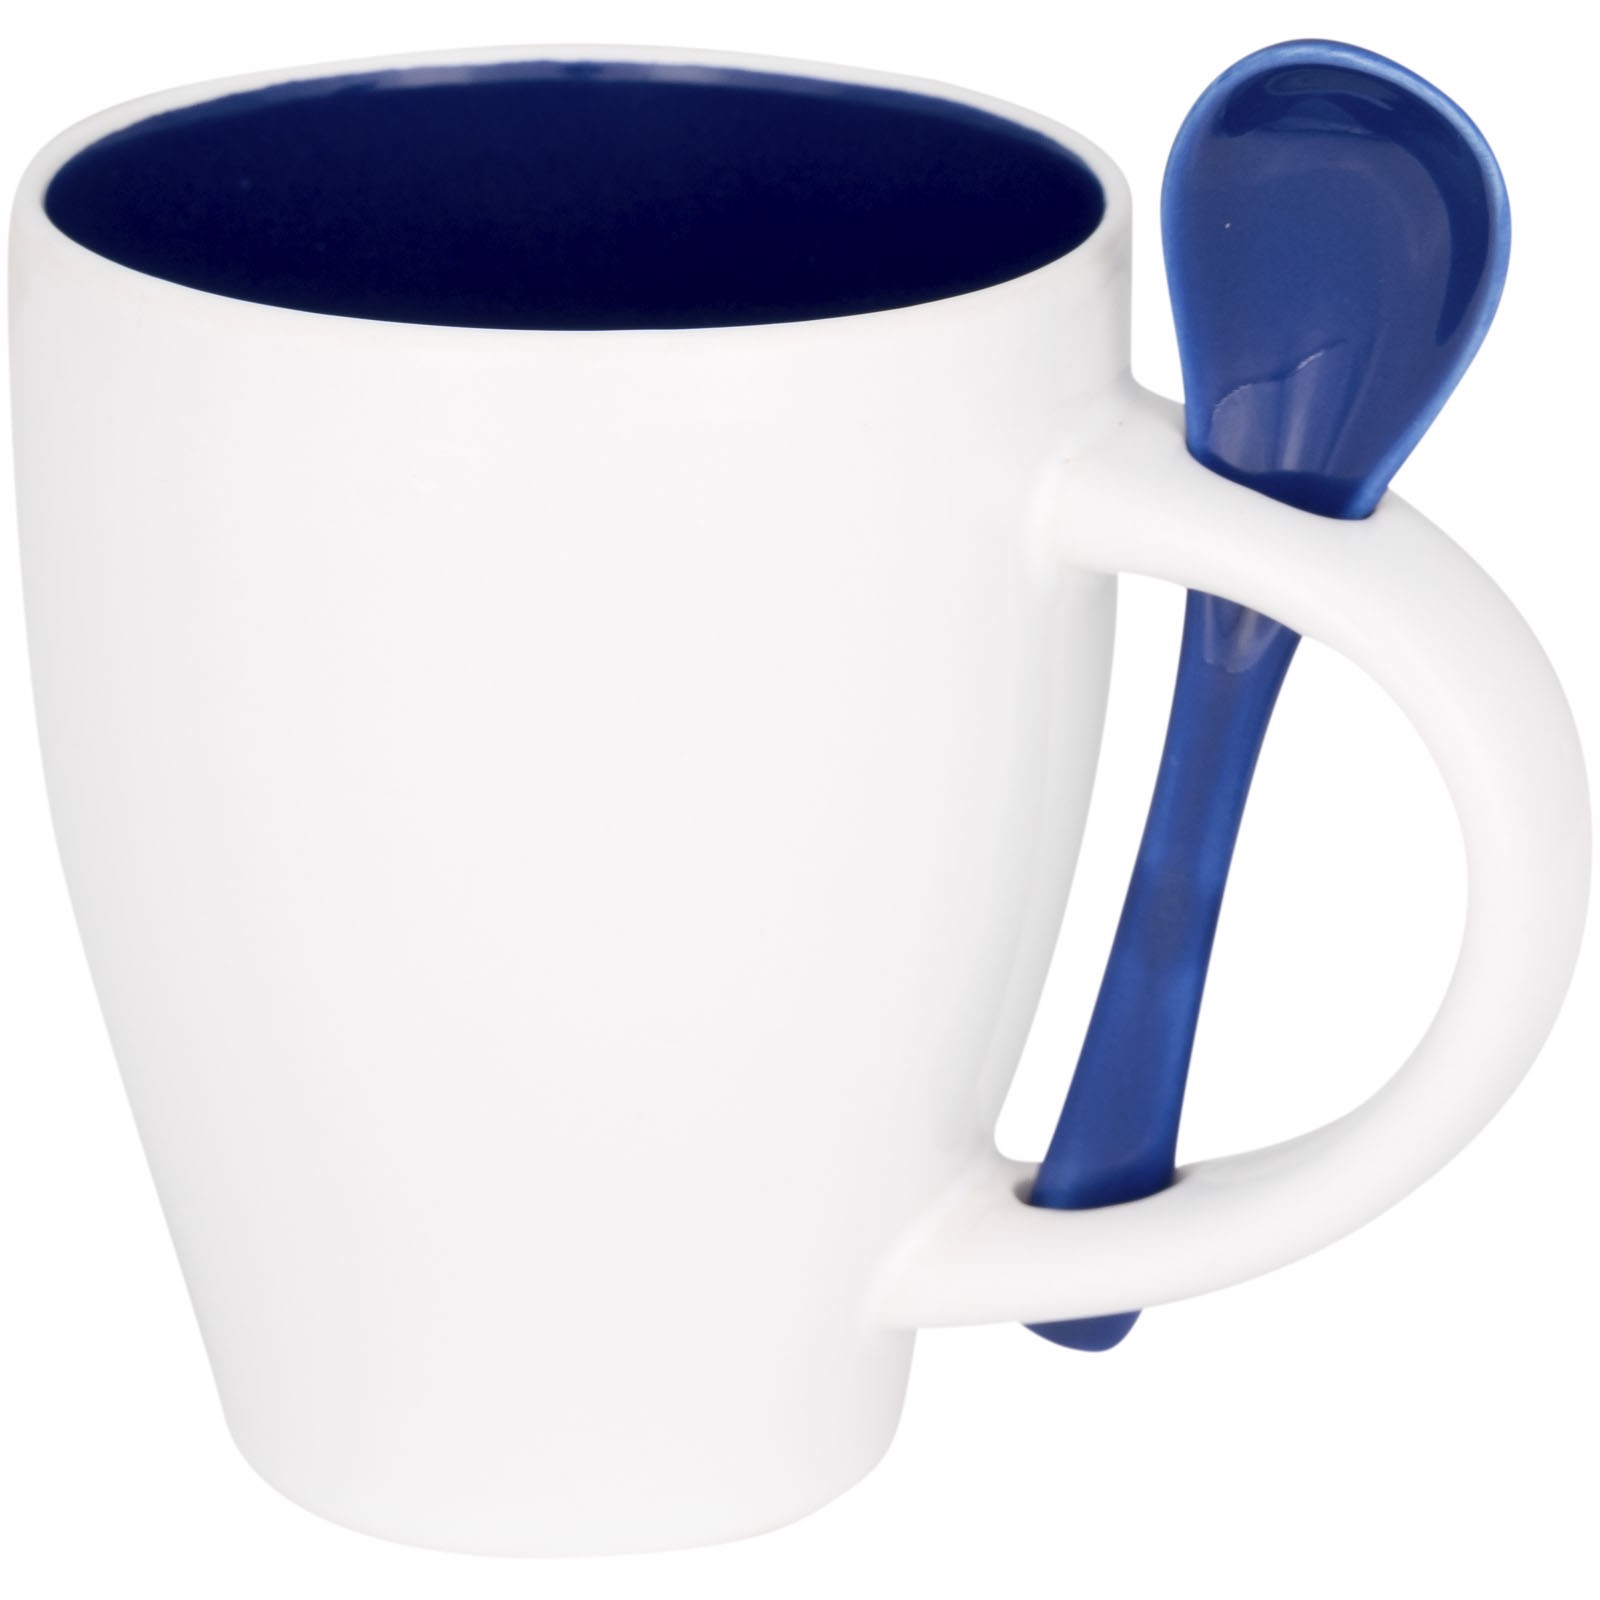 Nadu 250 ml ceramic mug with spoon - Blue